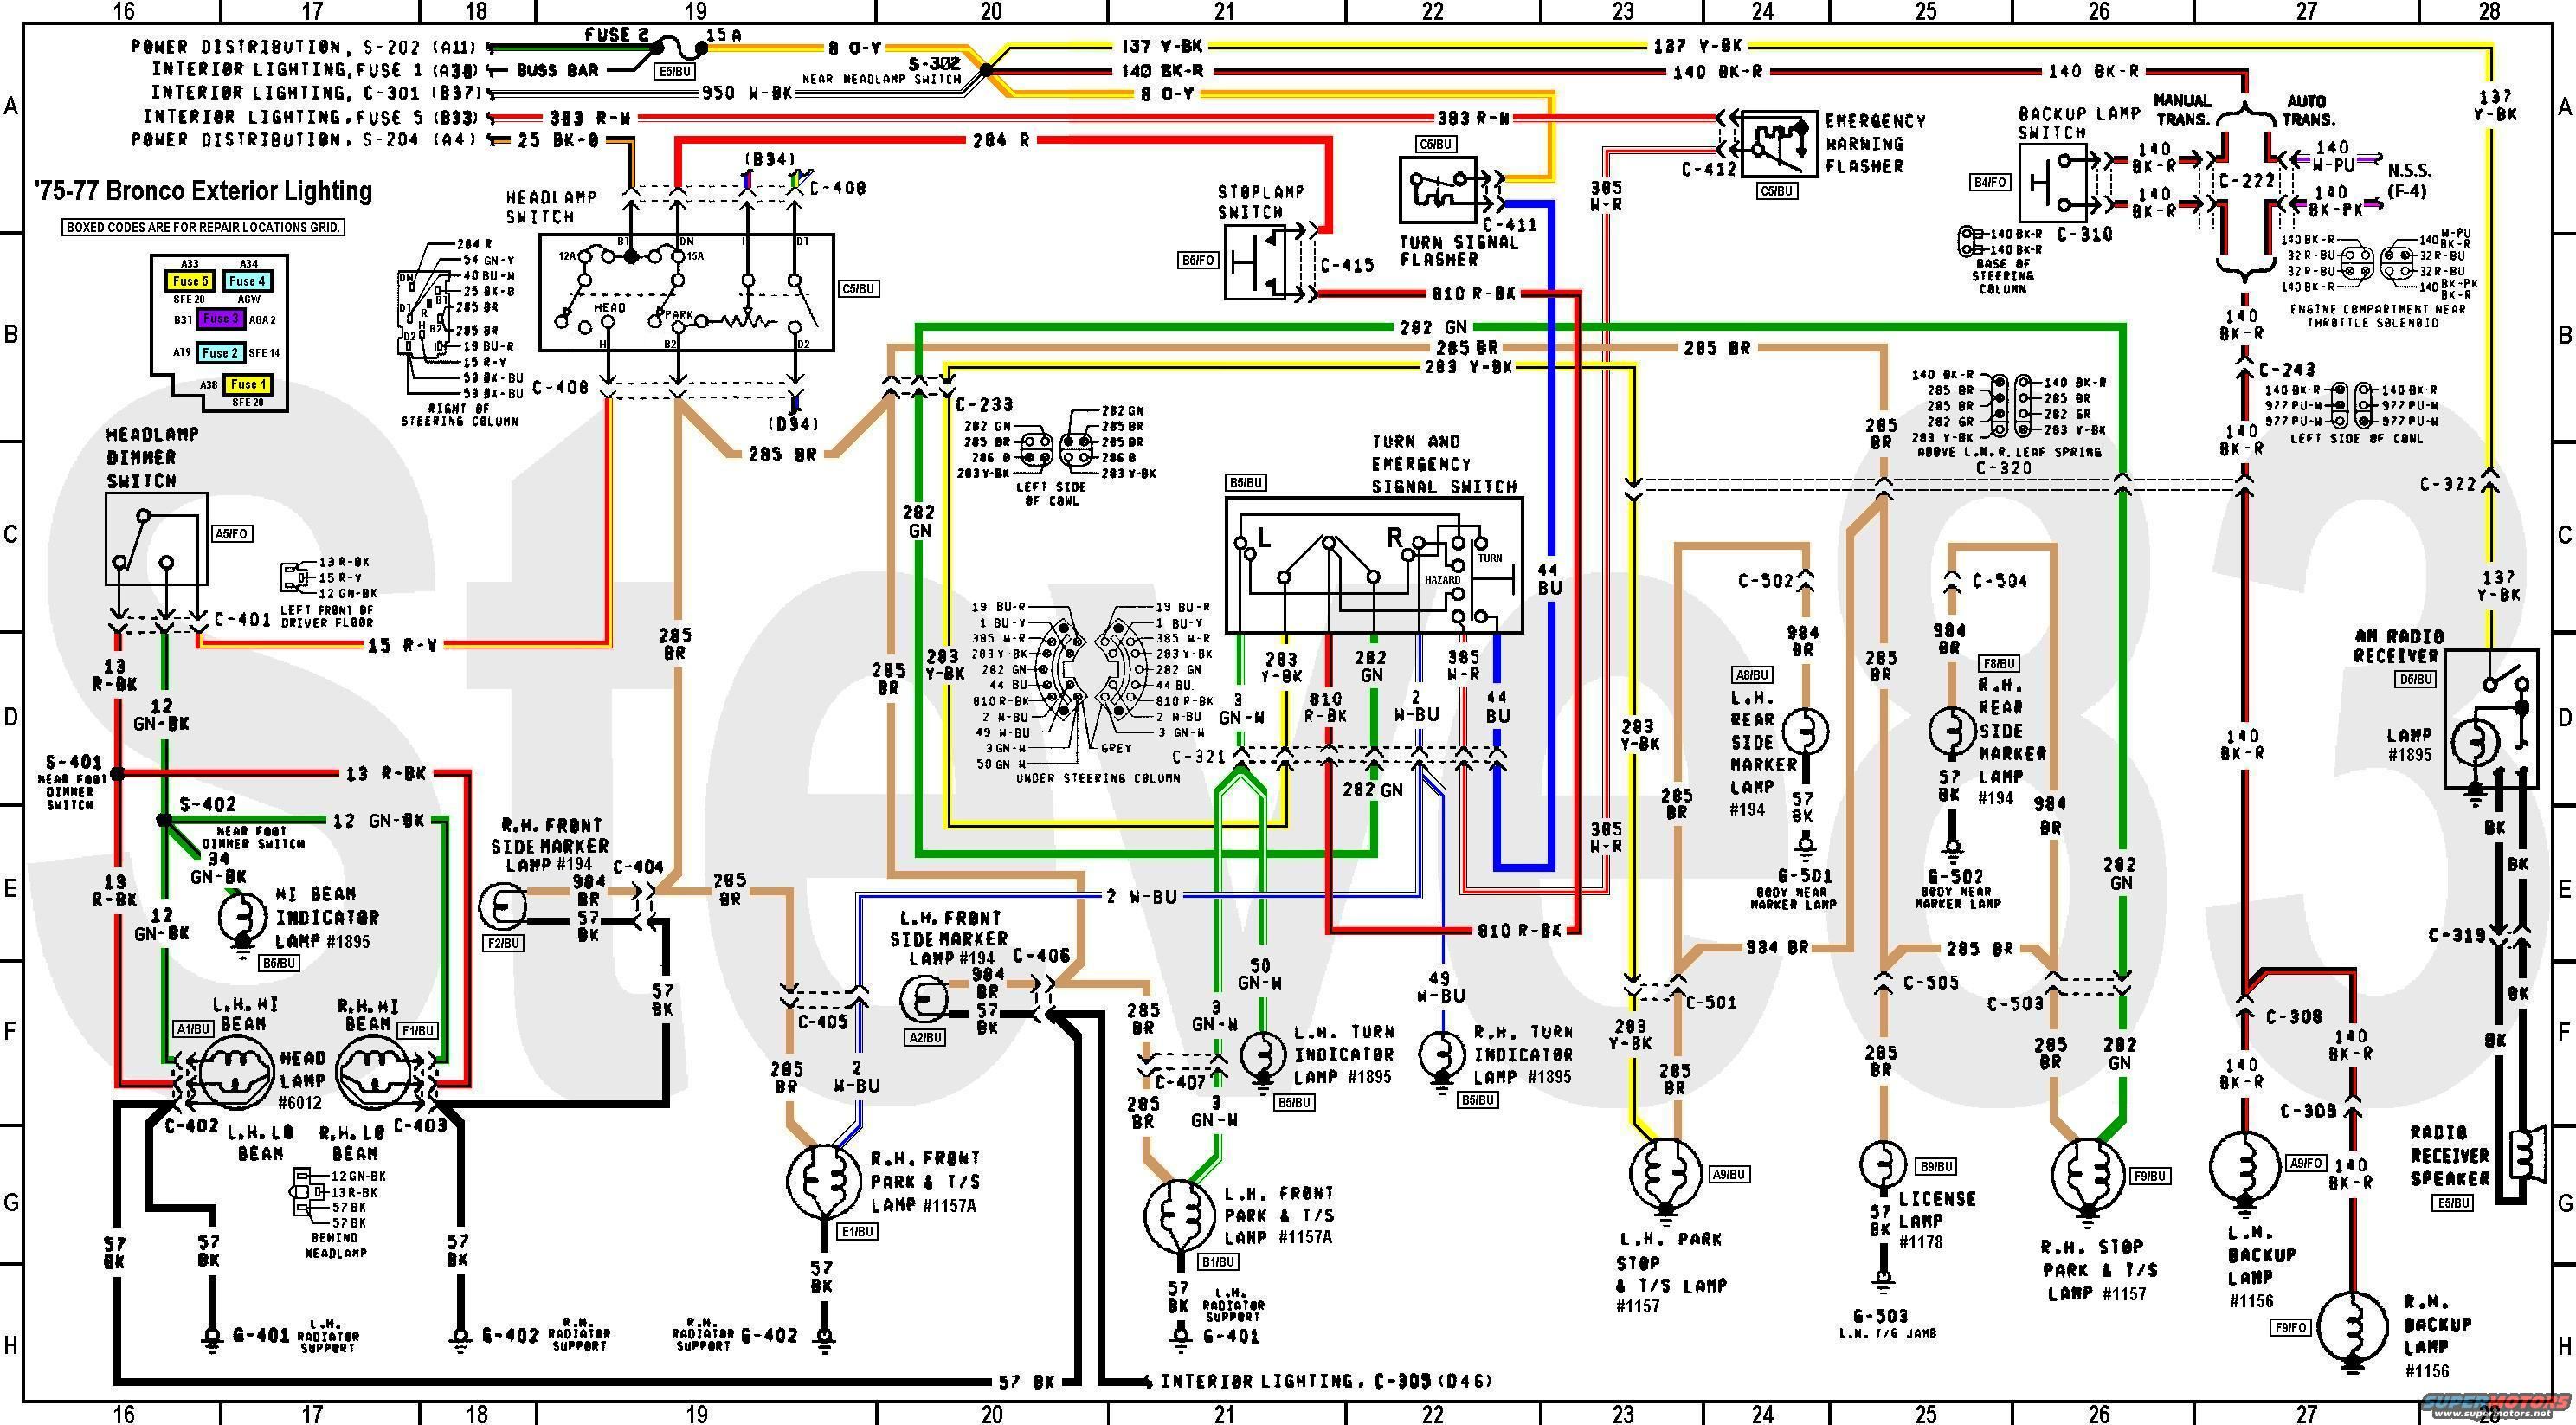 early bronco wiring diagram 1976 ford bronco tech diagrams picture | supermotors.net early bronco electrical diagram